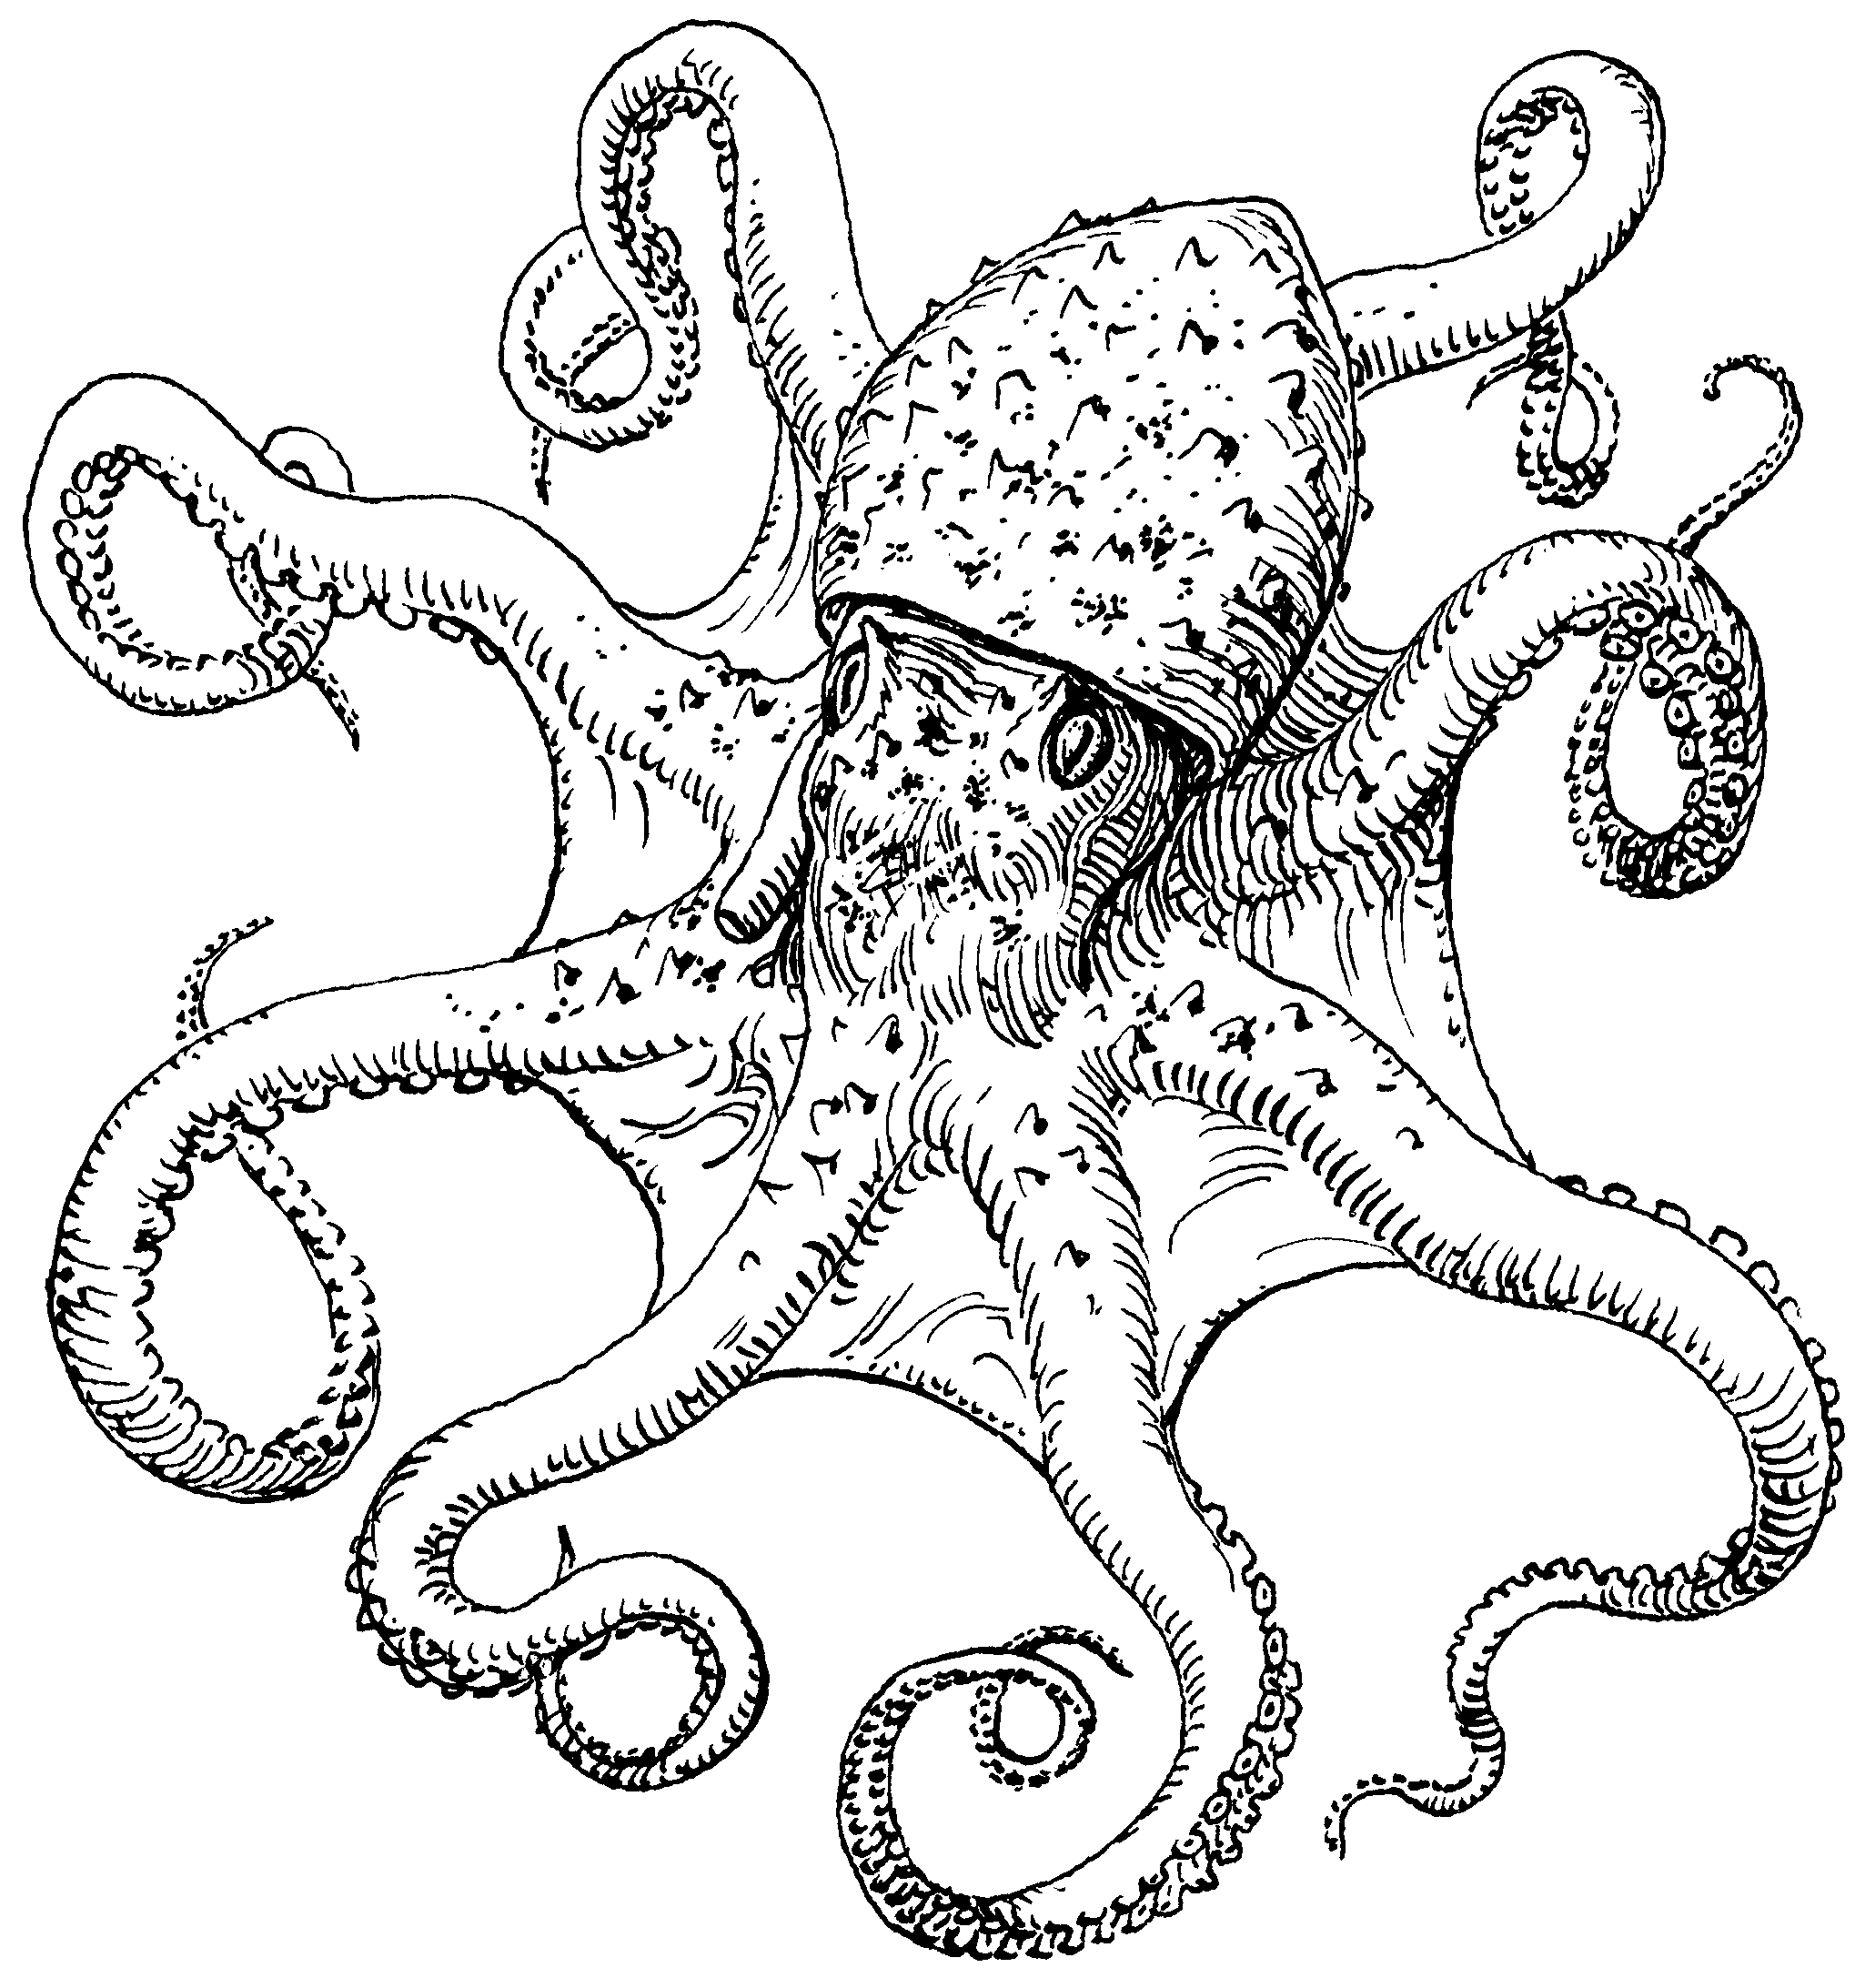 octupus drawing octopus on pinterest octopus sketch octopus tattoos and drawing octupus